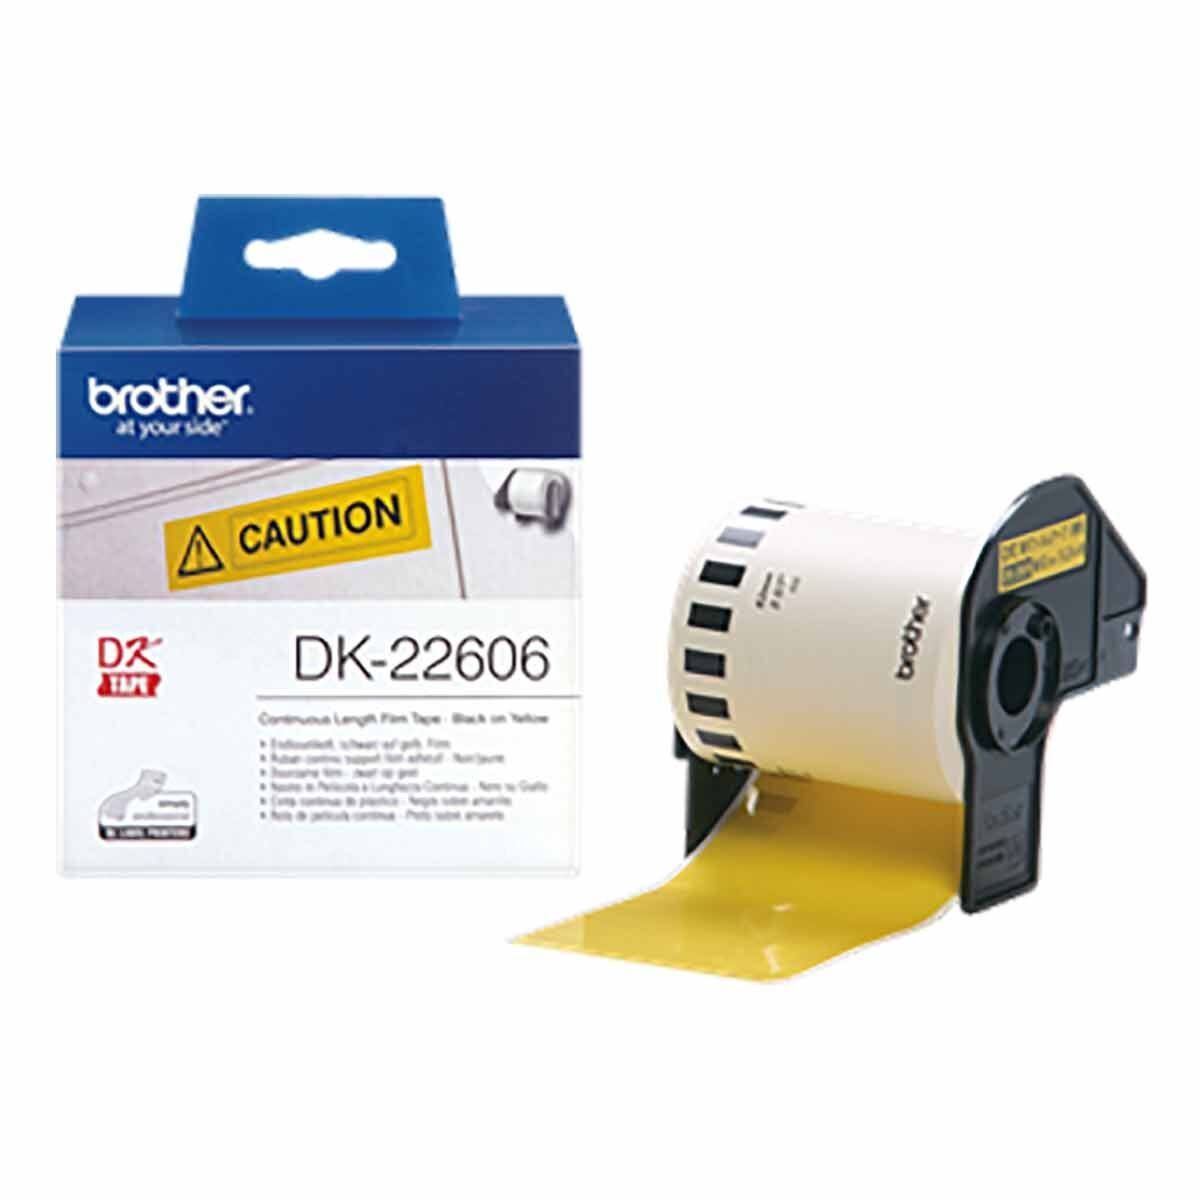 Brother DK-22606 Label Roll Black on Yellow